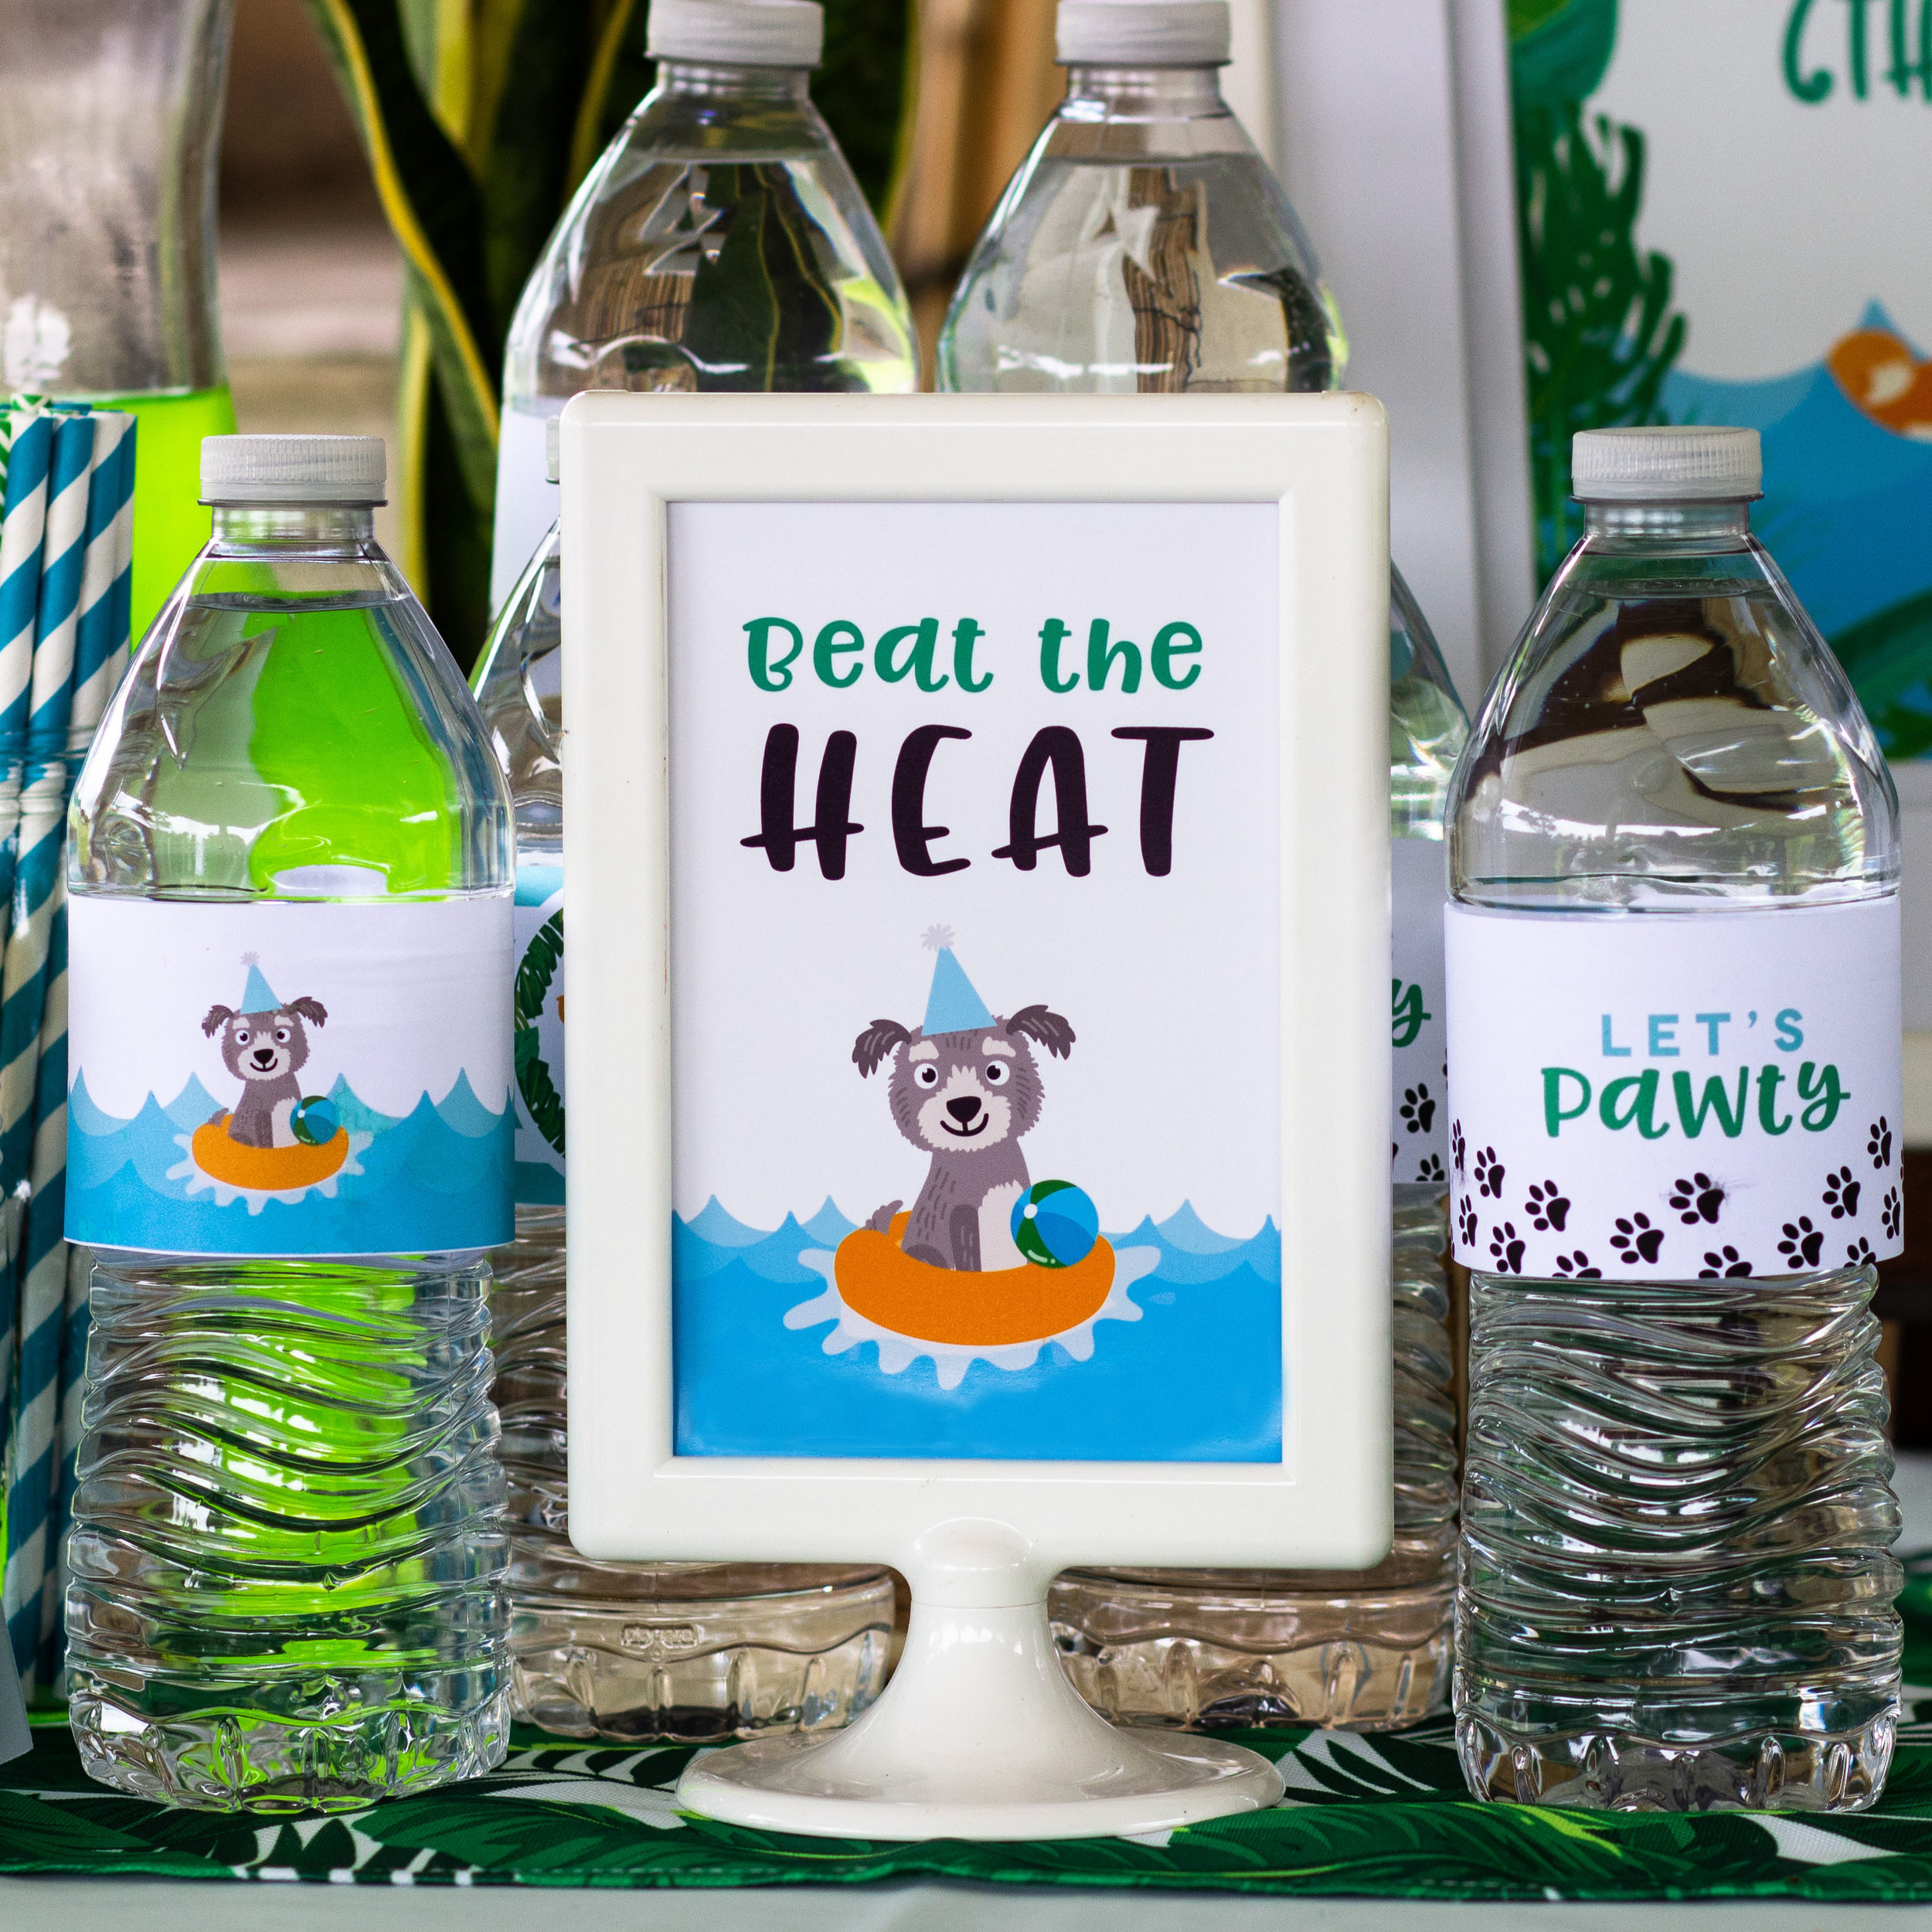 Beat the Heat Water Station at a puppy pool party // mkkm designs